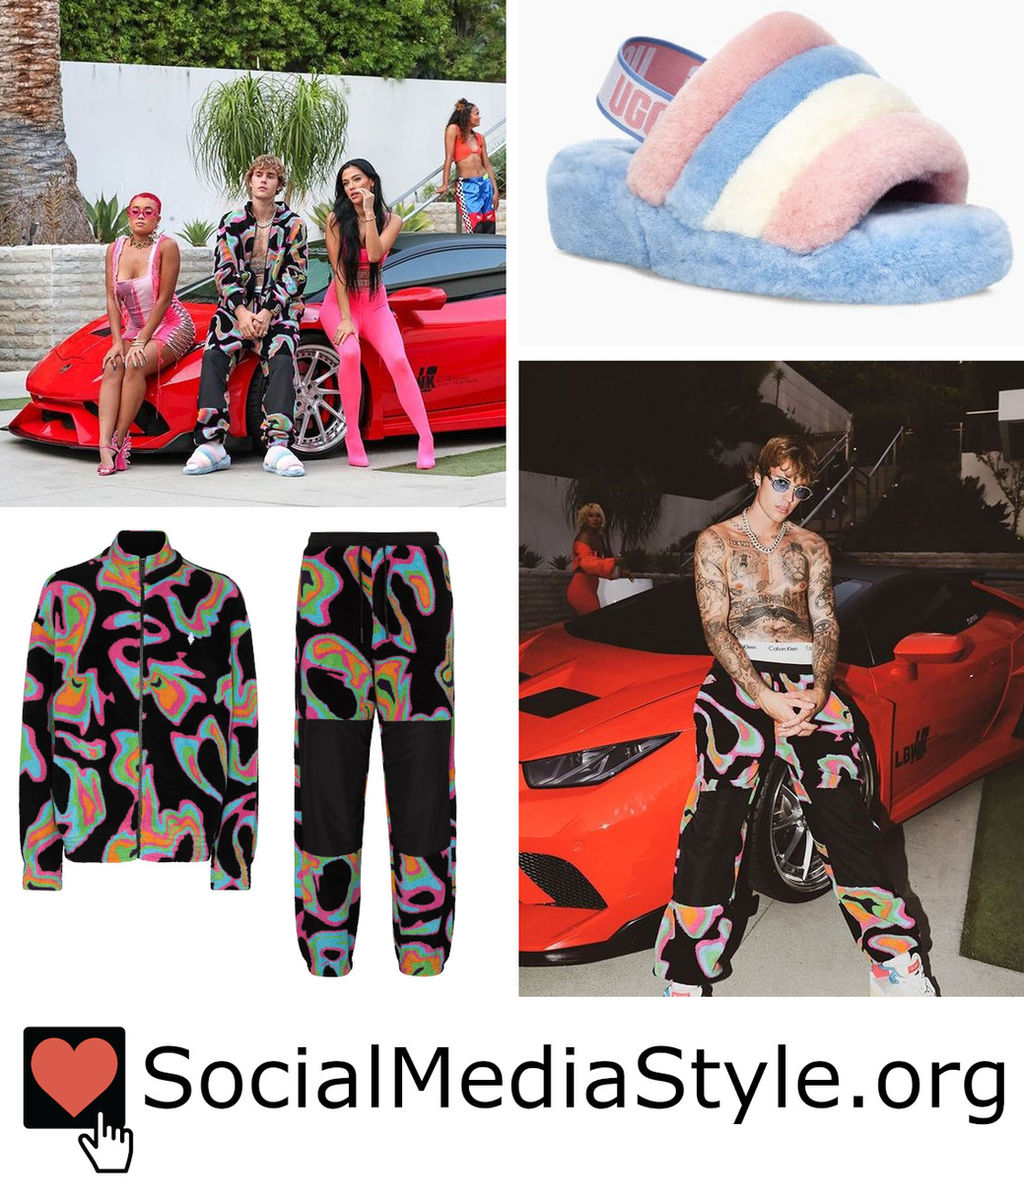 Justin Bieber S Psychedelic Print Outfit And Fuzzy Slide Sandals From The Popstar Music Video